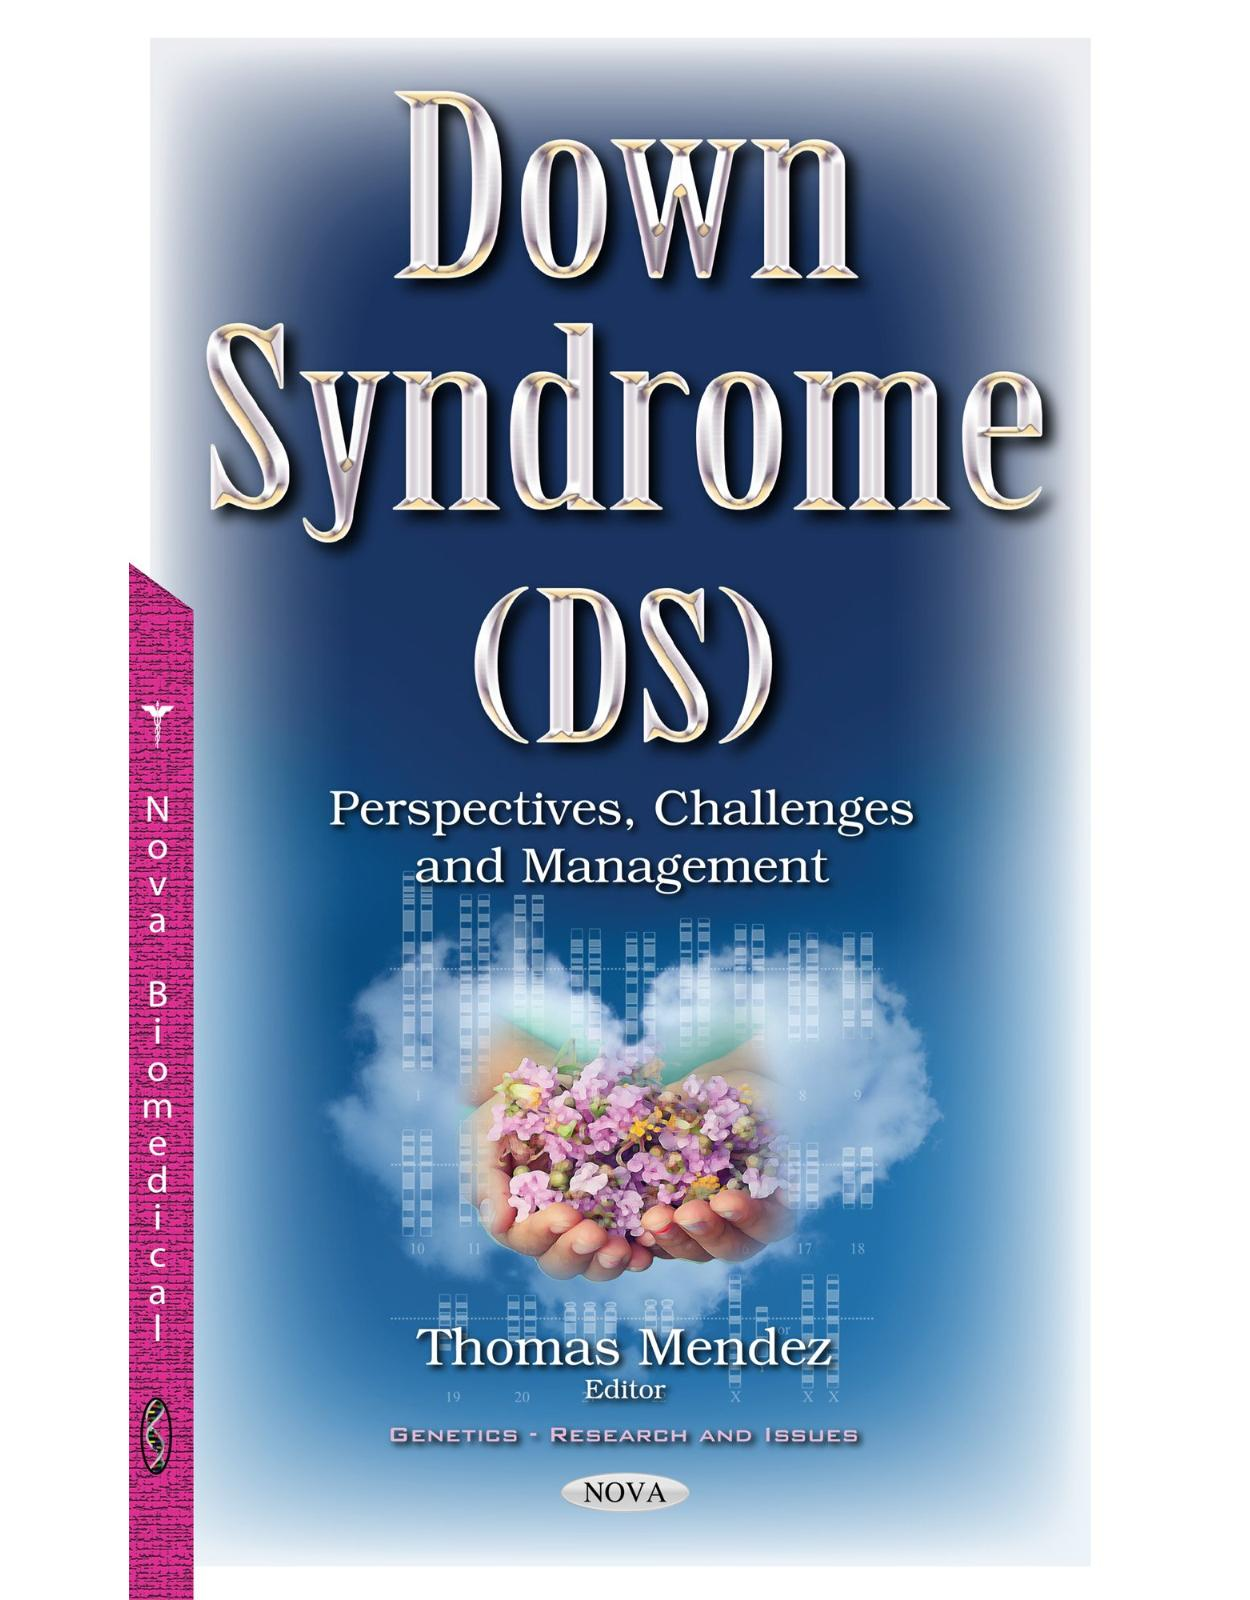 Down Syndrome (DS): Perspectives, Challenges & Management